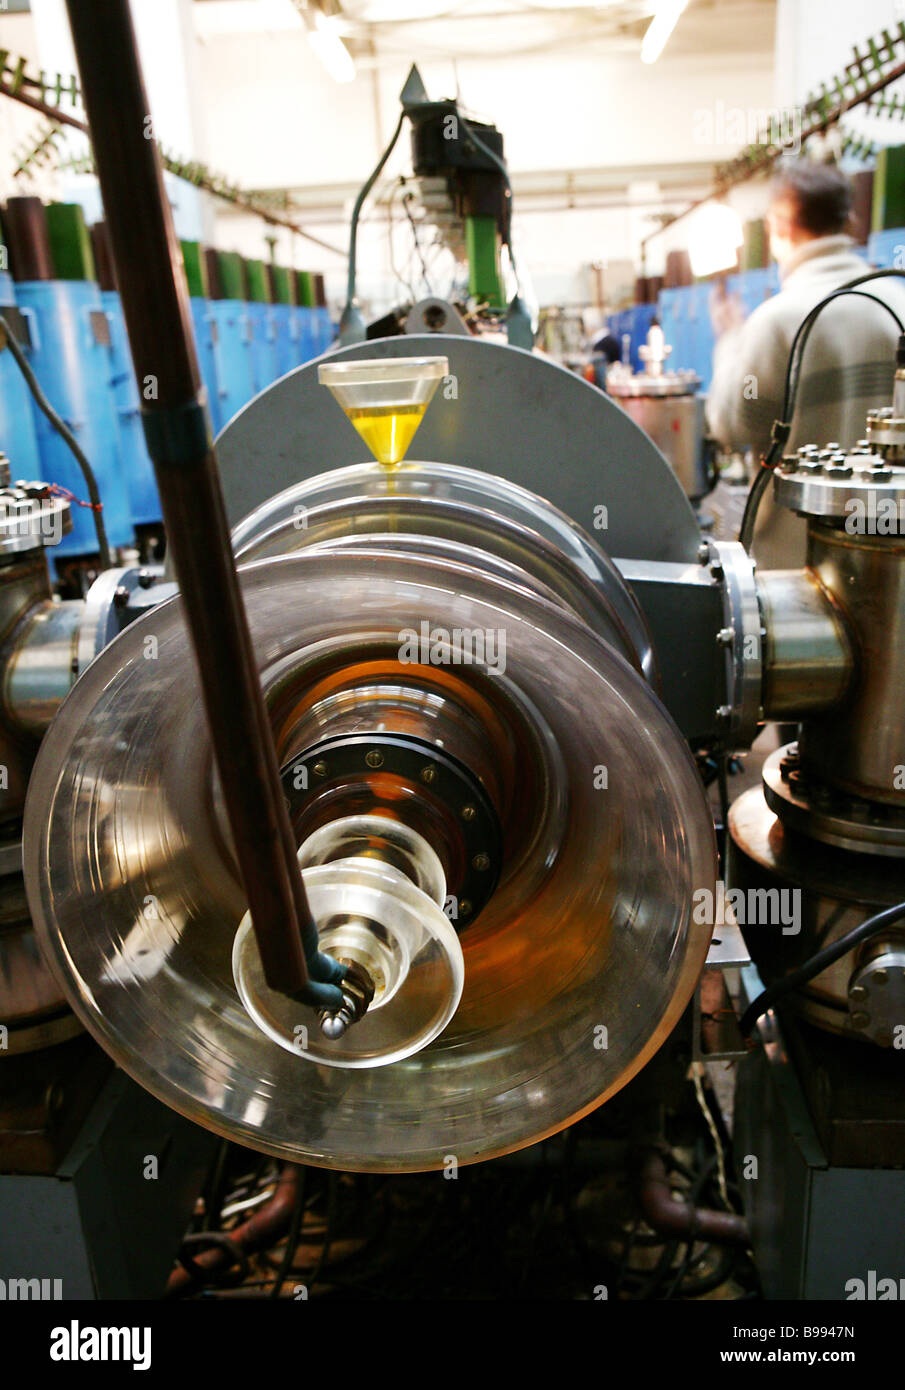 Linear induction electron accelerator LIU 3000 in the Particle physics laboratory of Joint Institute for Nuclear - Stock Image